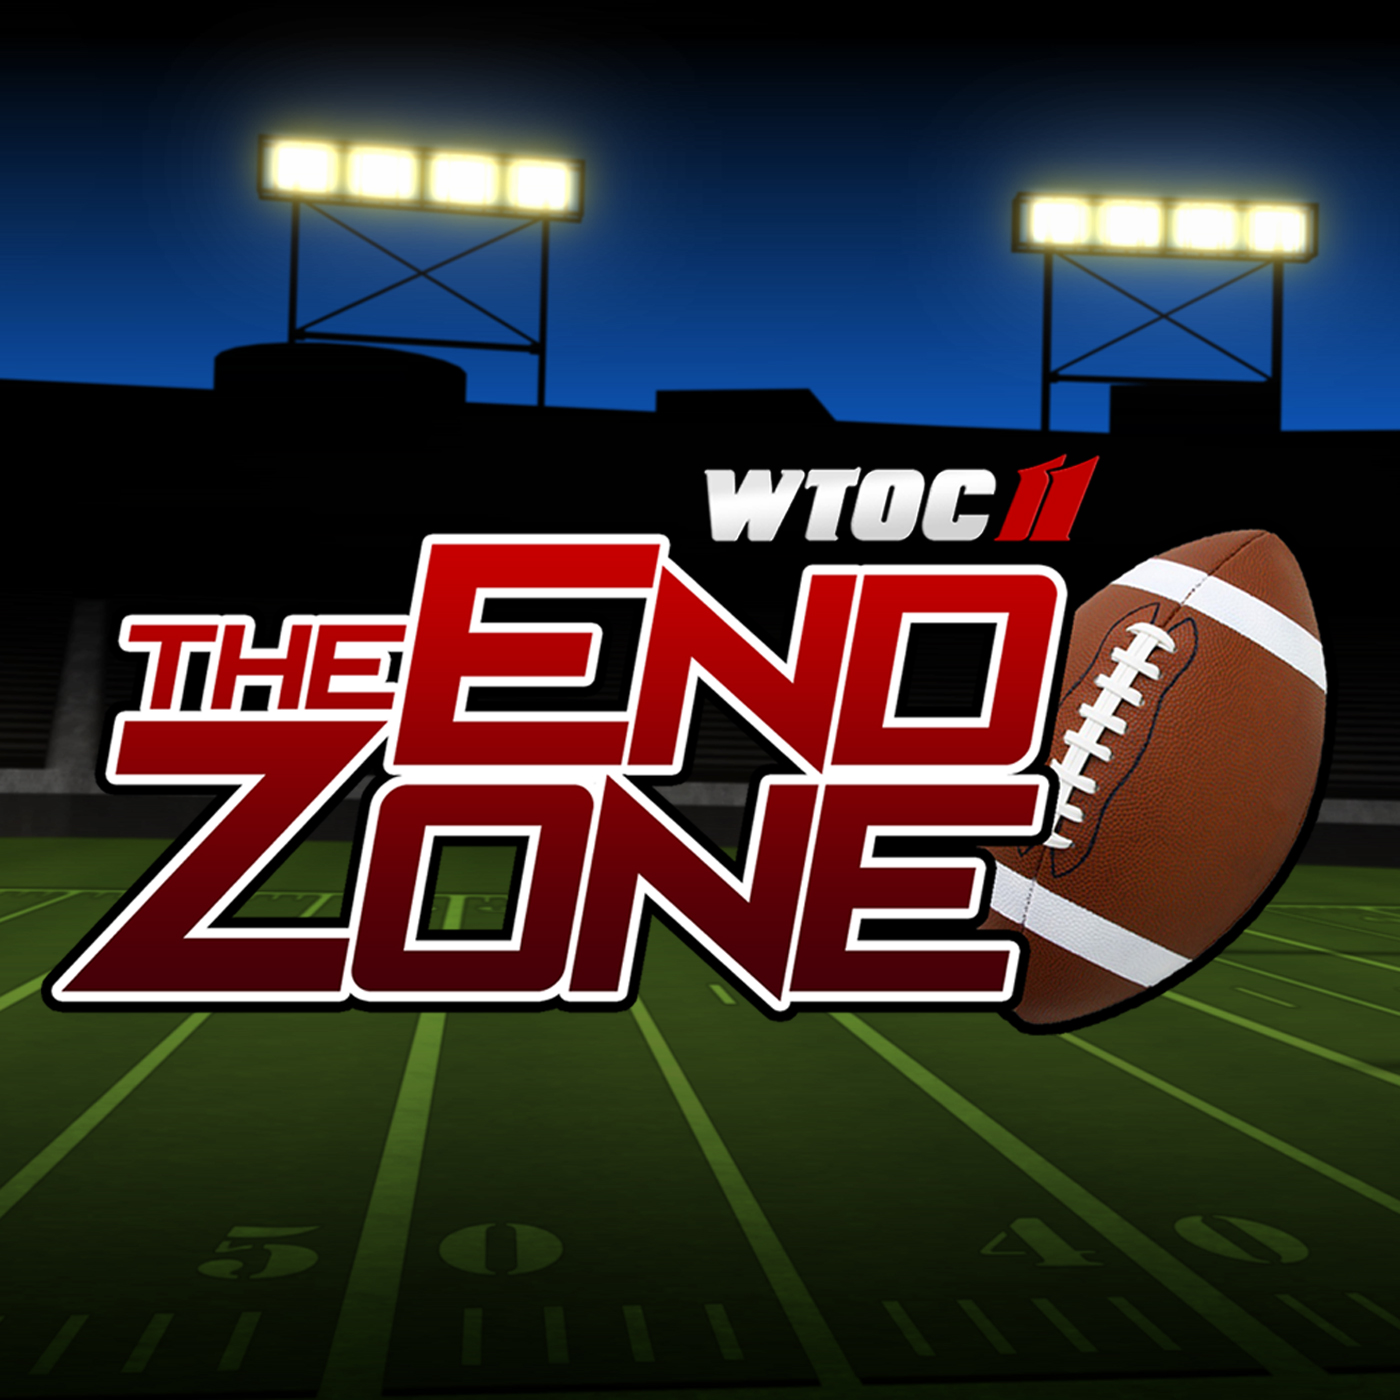 WTOC The End Zone | Libsyn Directory